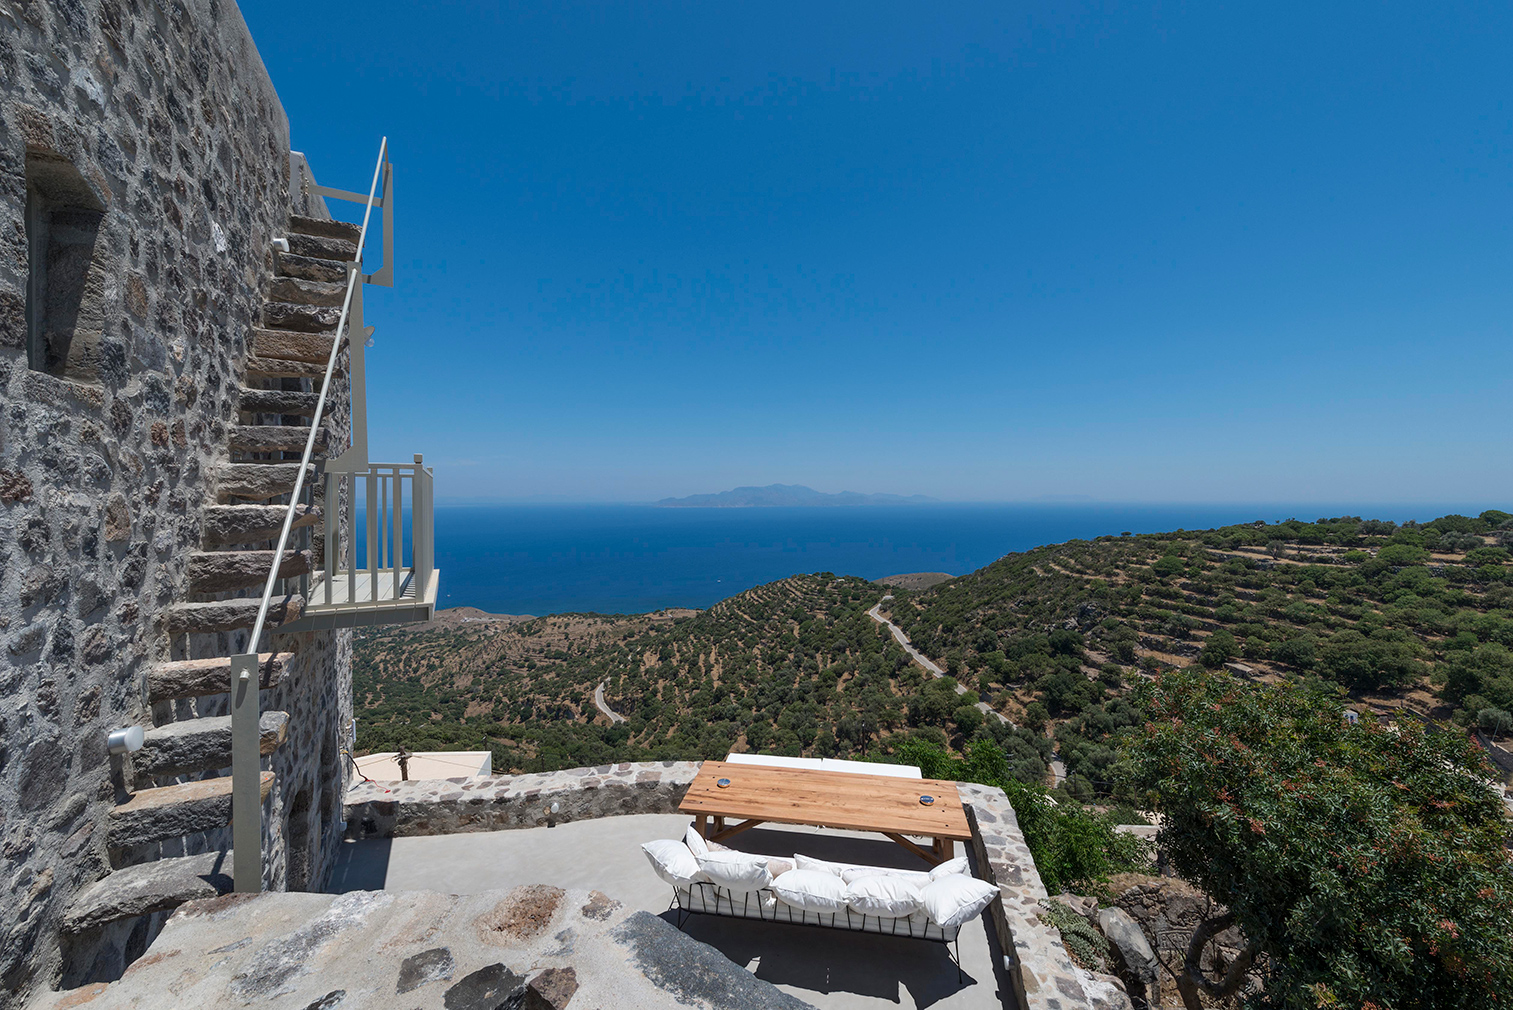 Greek holiday home for rent: Villa Nemesis